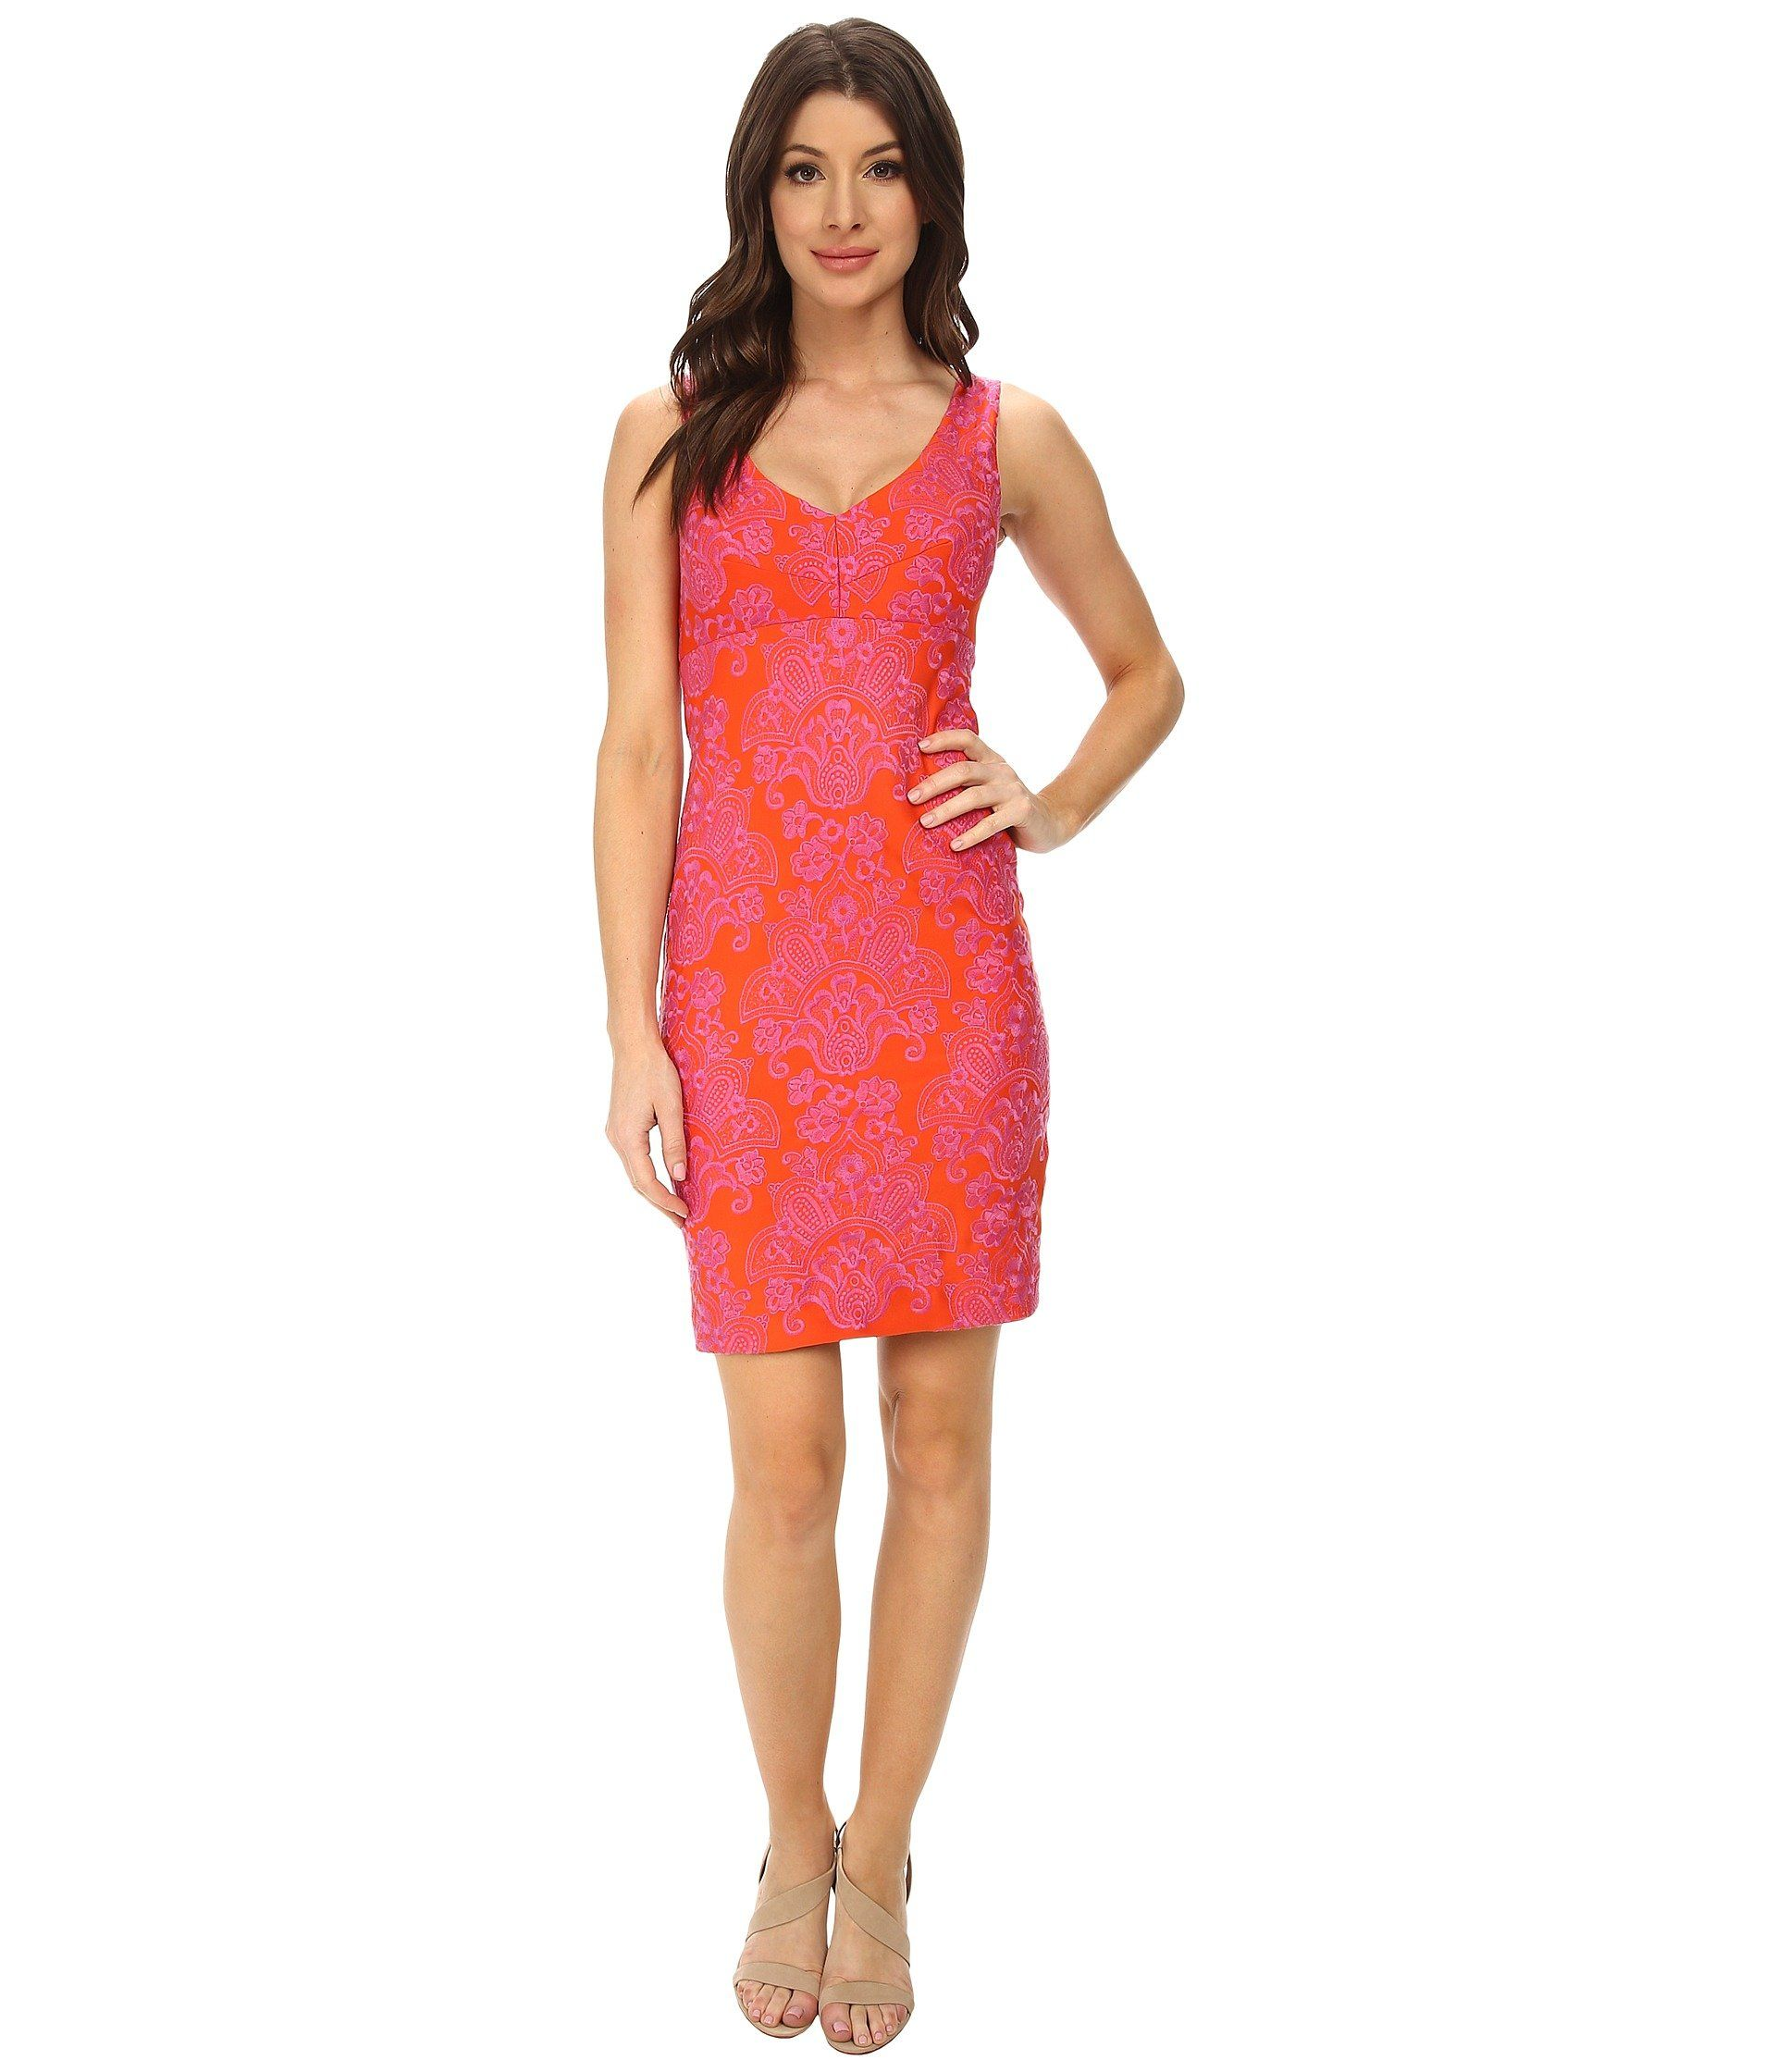 Yqalk Orange Nicole confiteriaslacruz Vneck Dress Sunken qCwUqtH